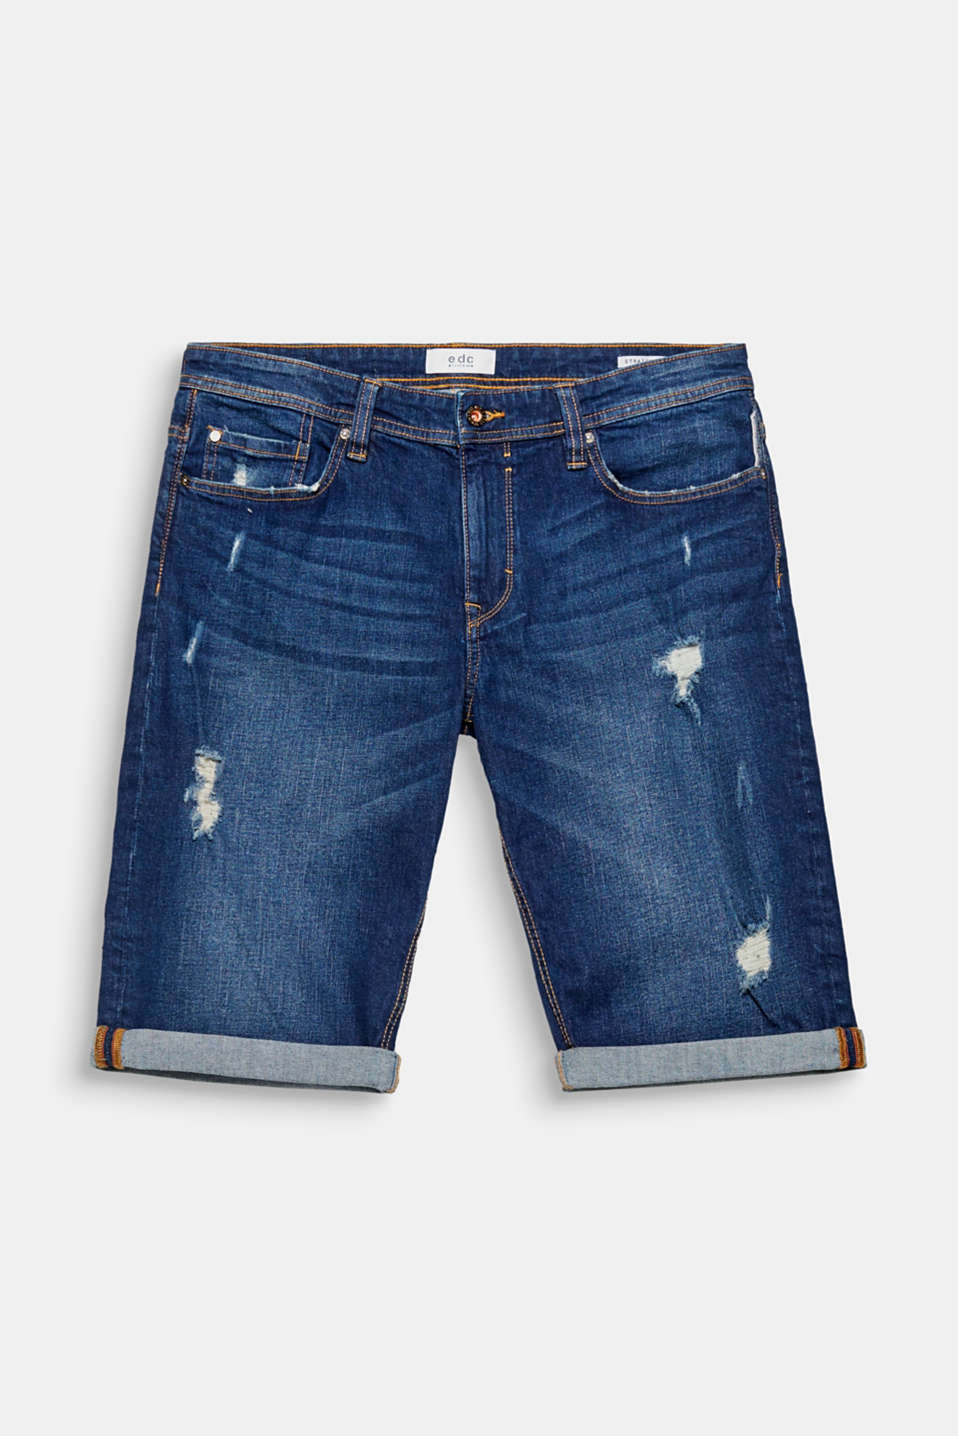 We love denim! These five-pocket shorts come in an authentic vintage wash with distinctive distressed effects.